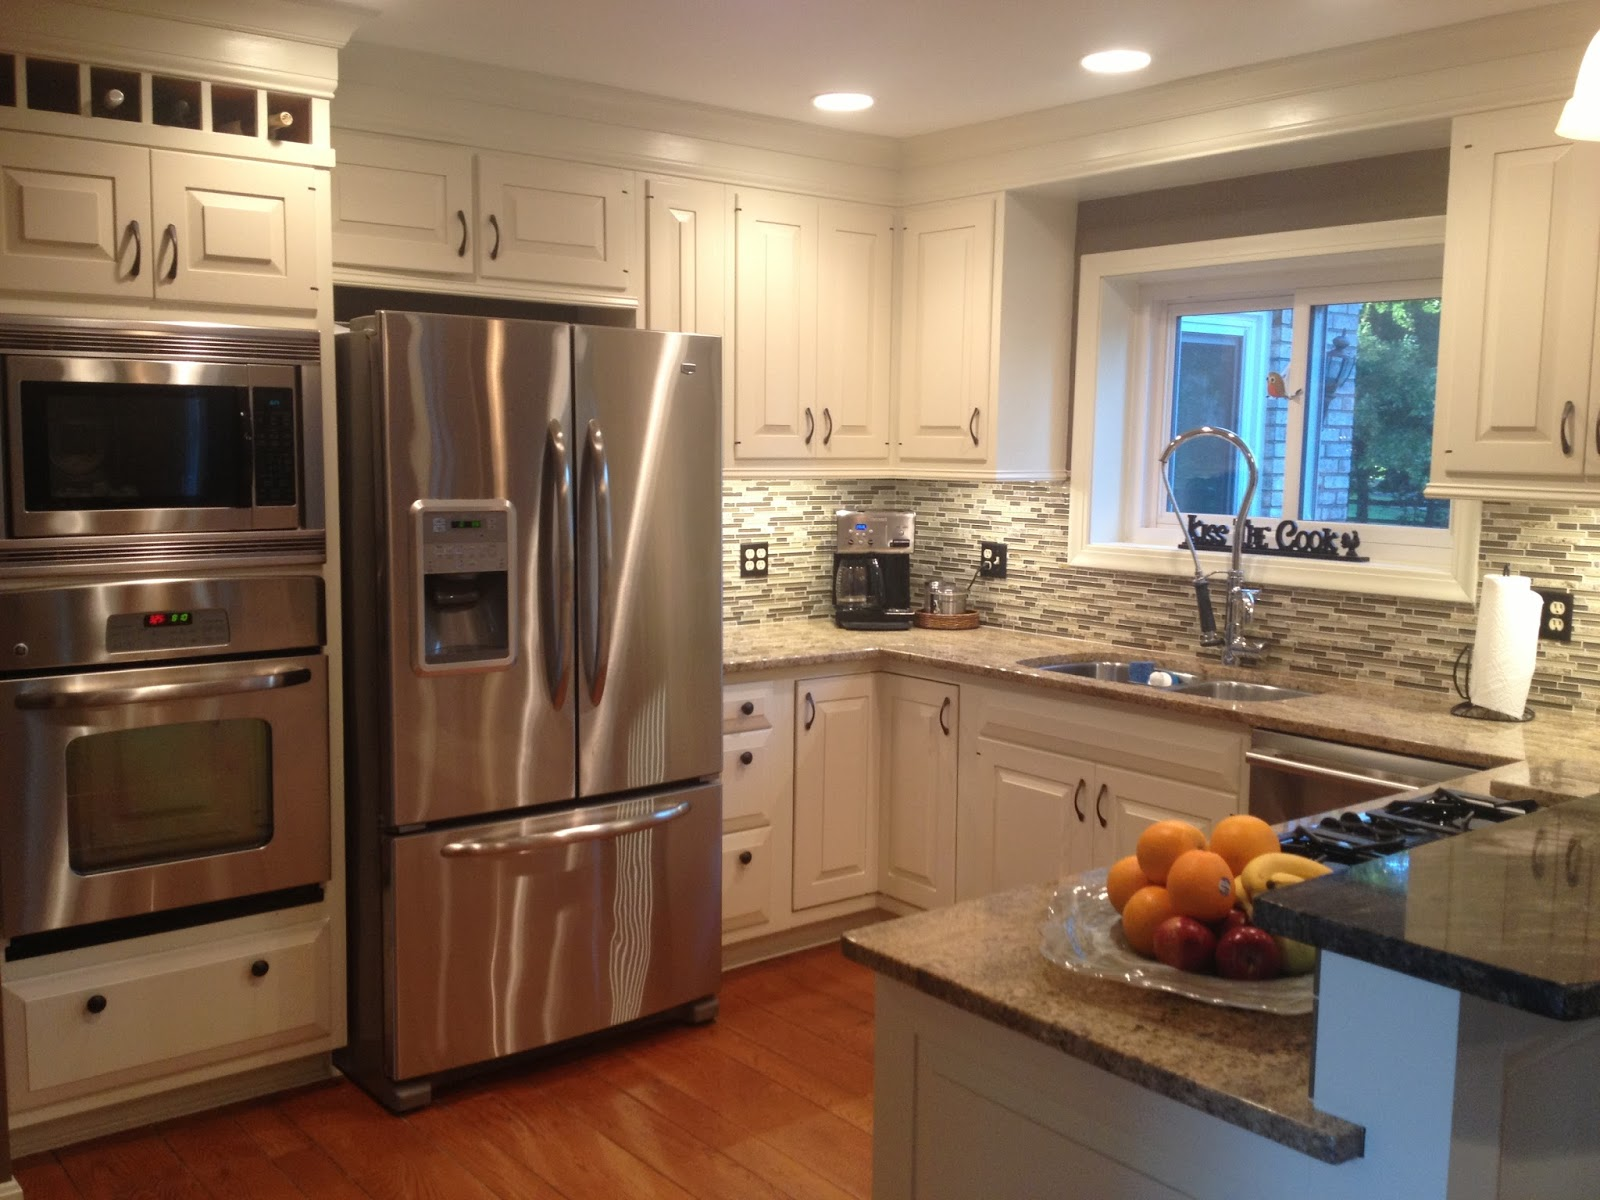 kitchen remodel ideas on a budget kitchens for less four seasons style the new